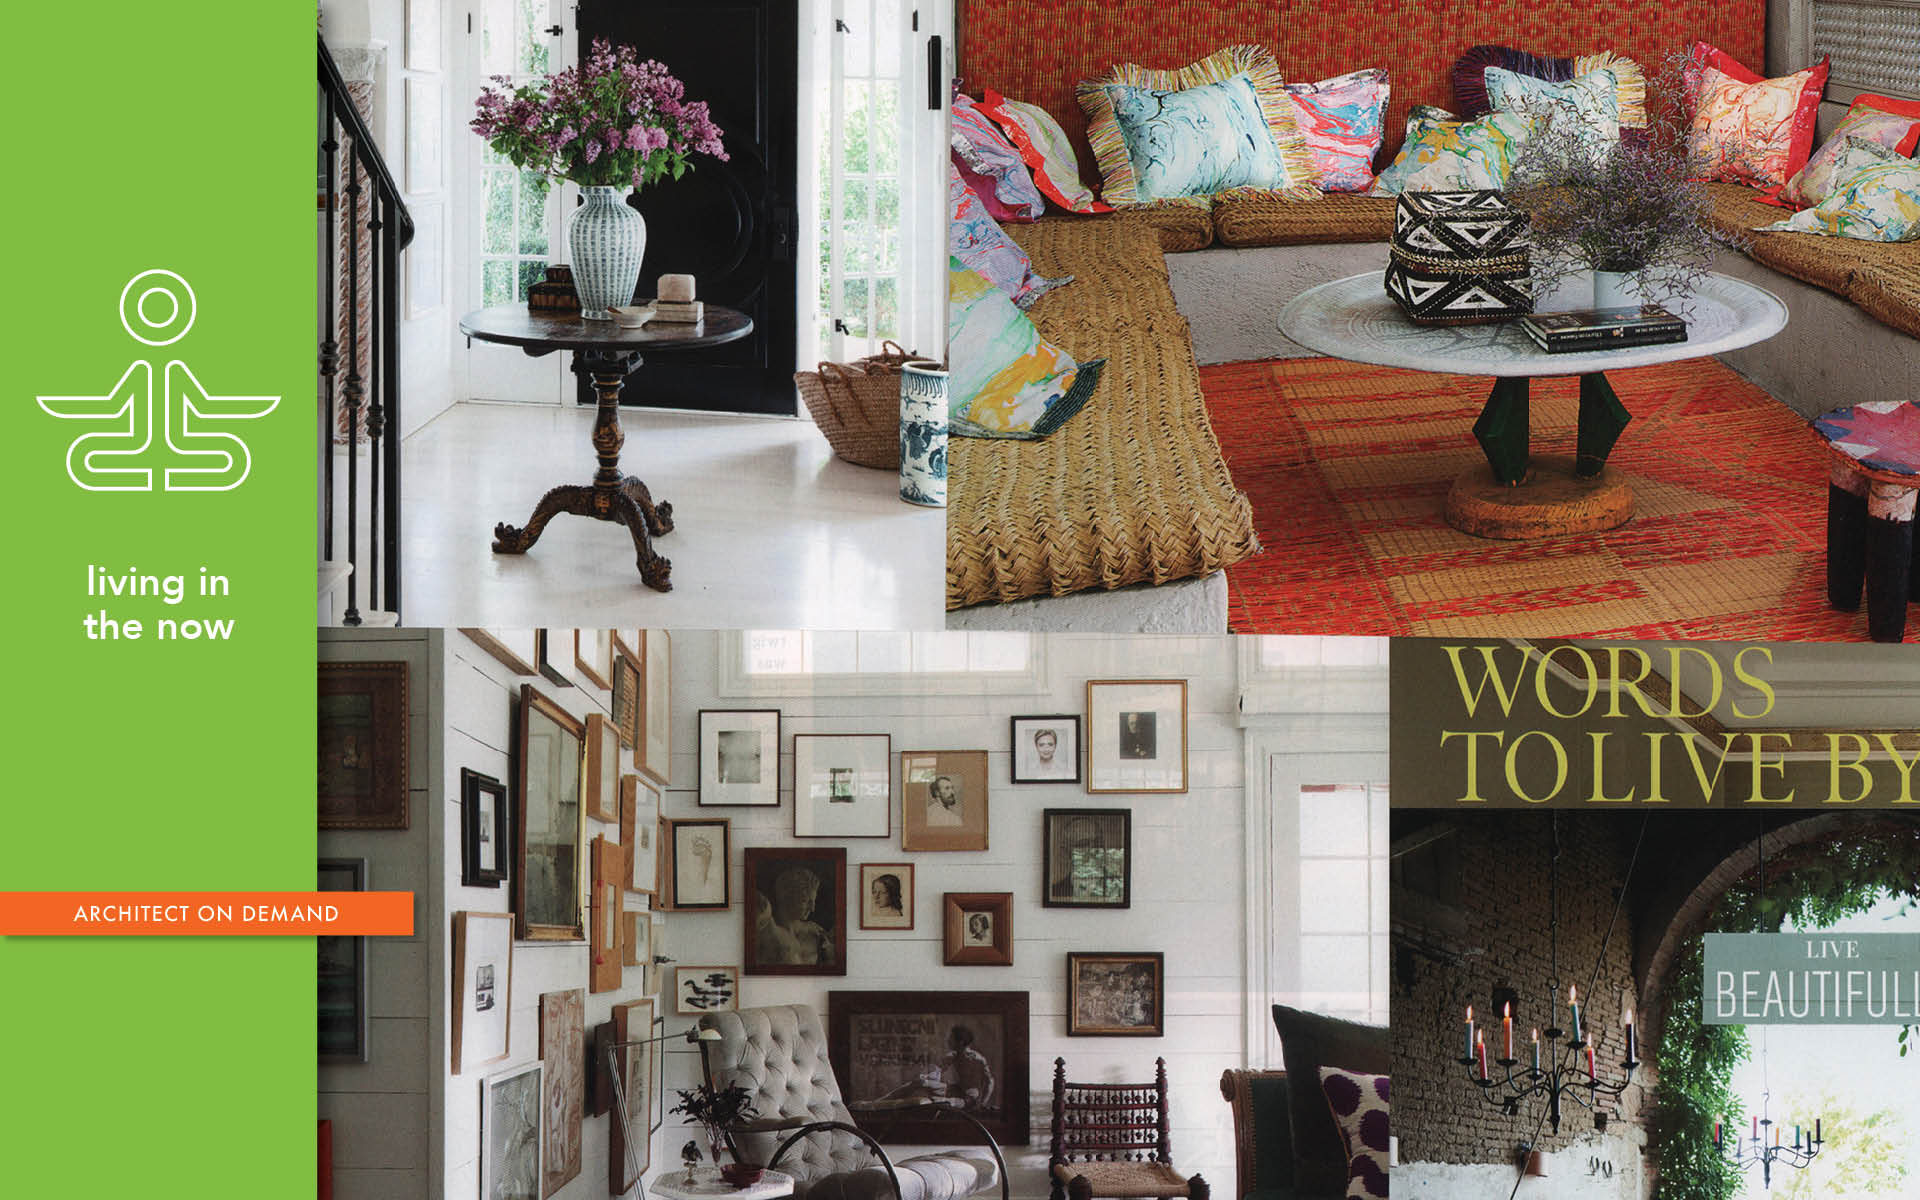 celebrating beauty, home, architect on demand, advice without strings